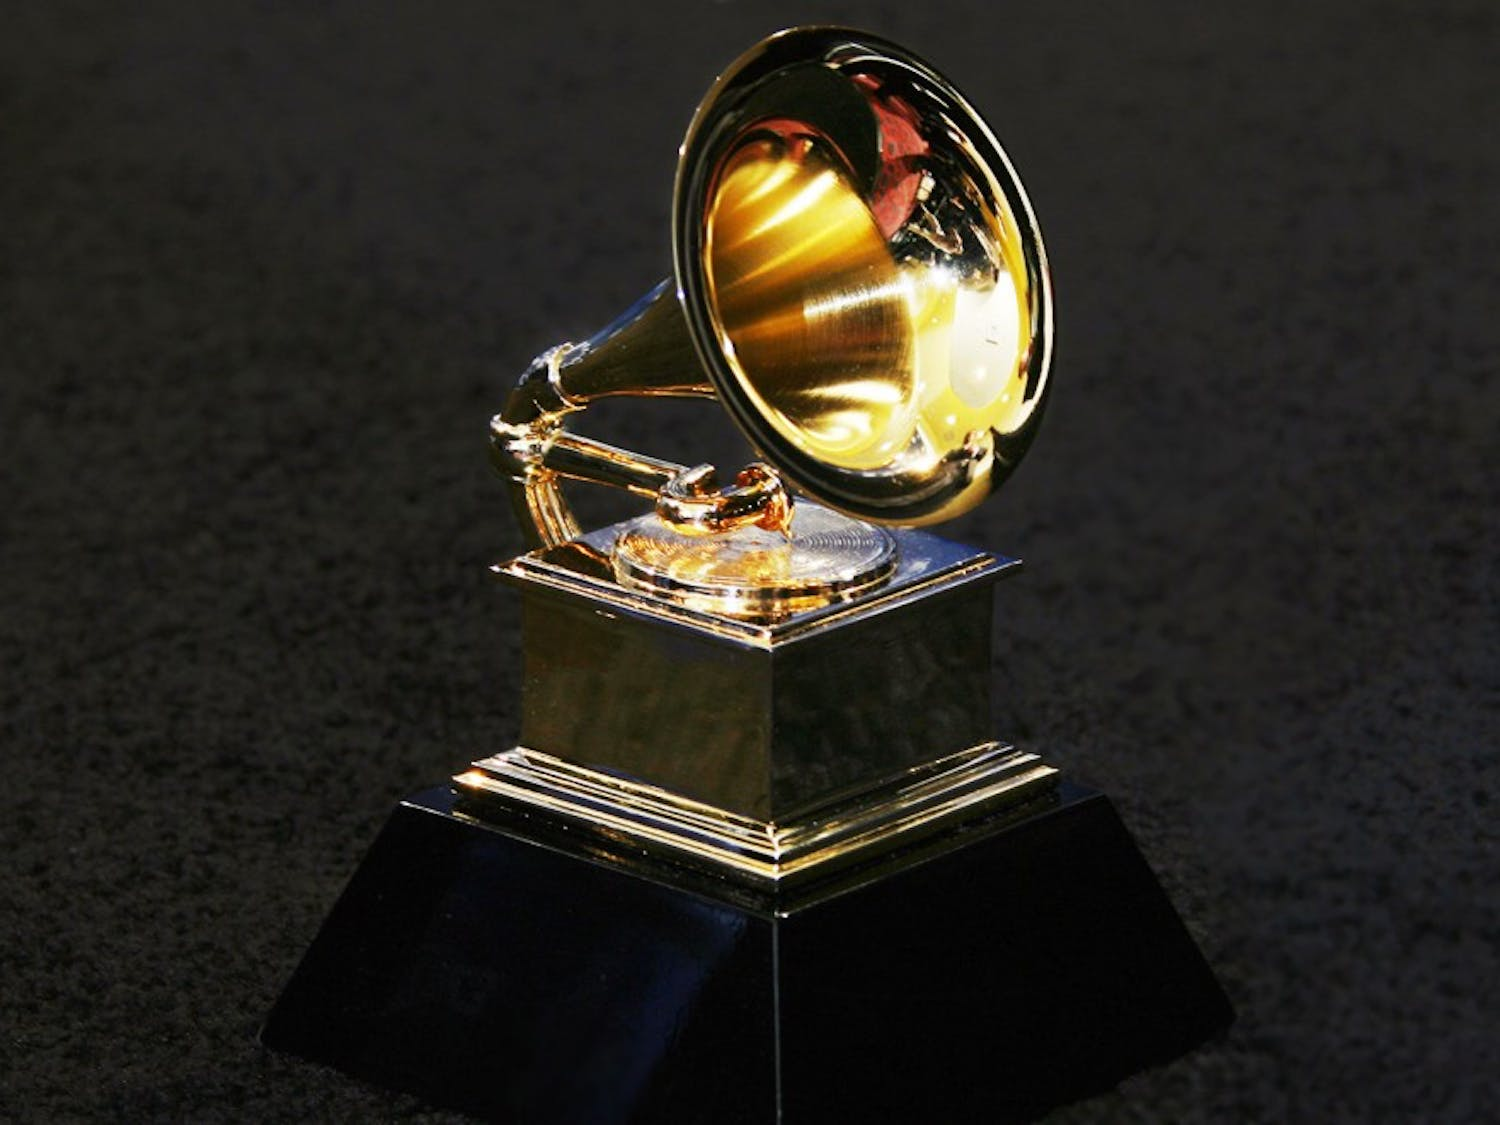 Strong performances from many of the artists couldn't save this year's Grammys from snubs and safe choices.